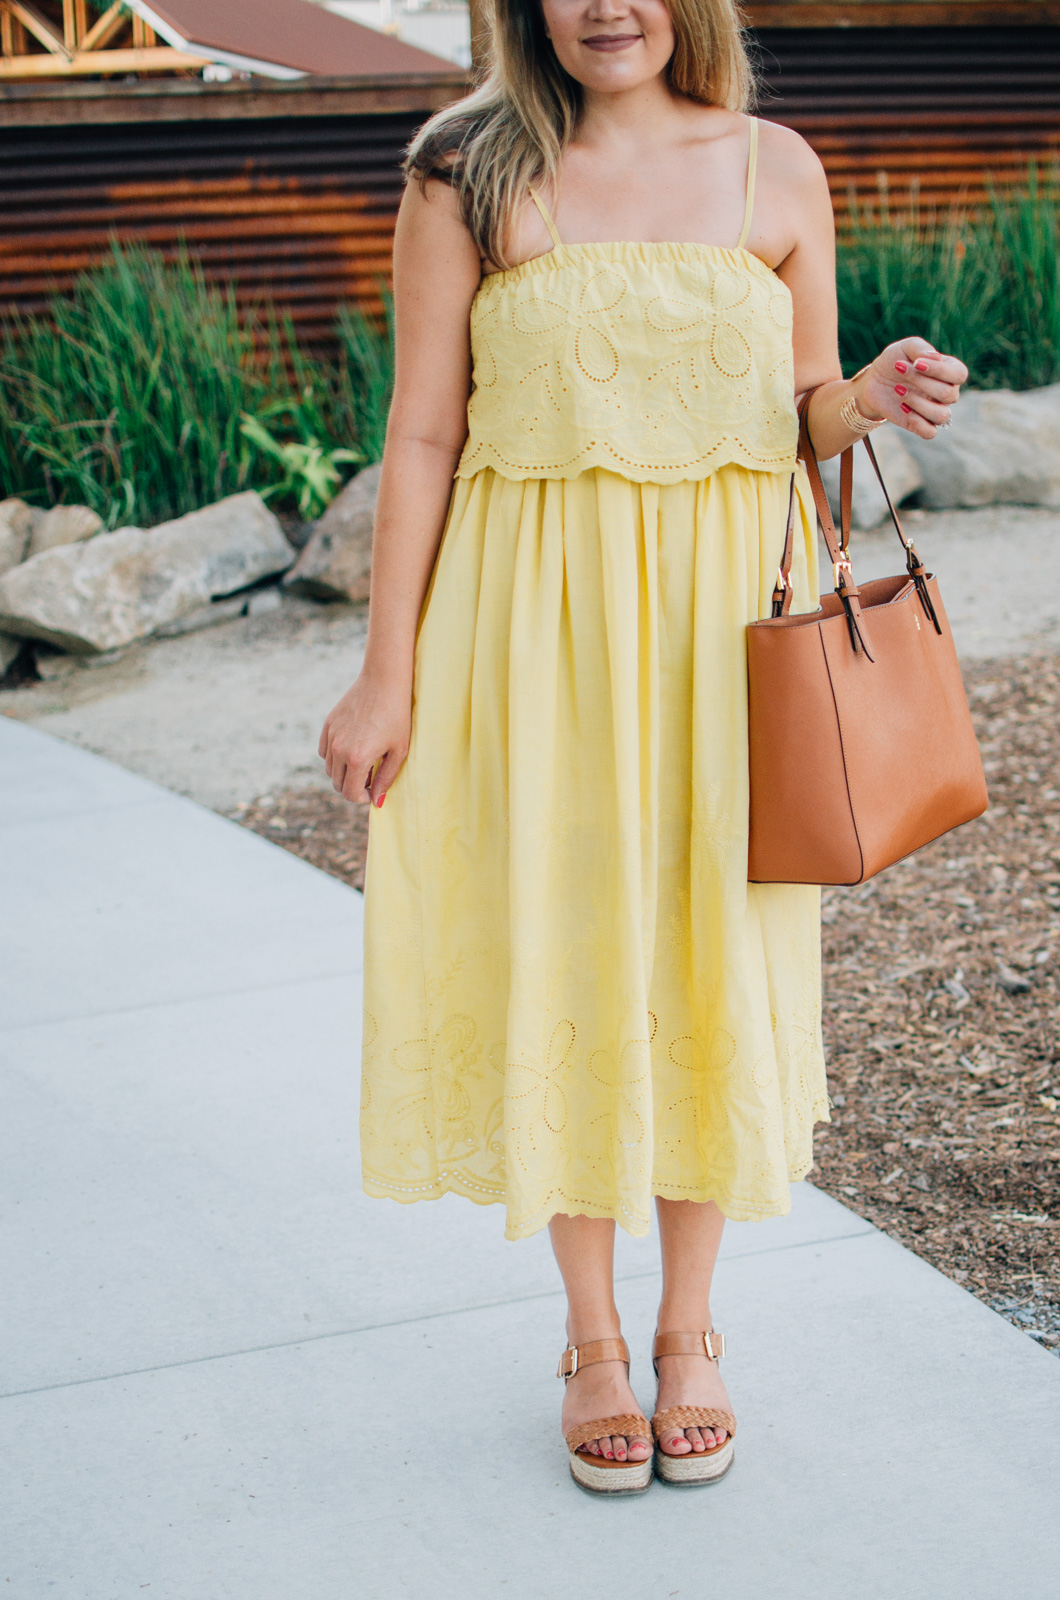 summer sundress outfit | More Summer outfit ideas at bylaurenm.com